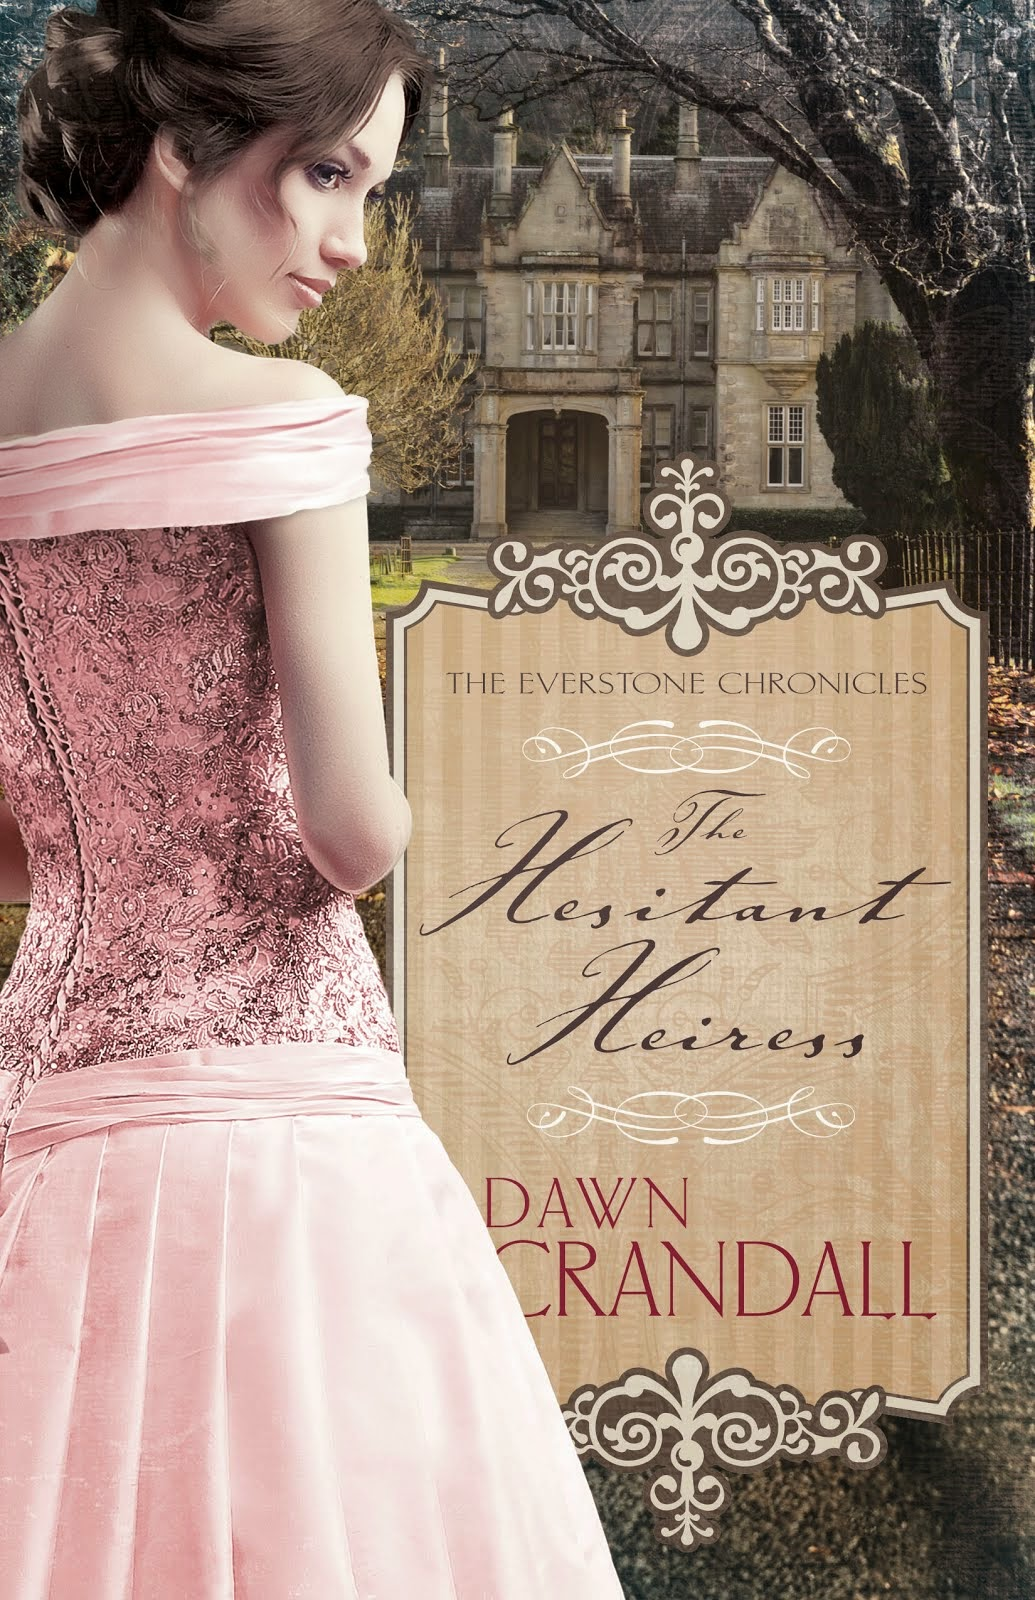 The Everstone Chronicles #1 -- THE HESITANT HEIRESS, 2015 ACFW Carol Award Finalist for Debut Novel